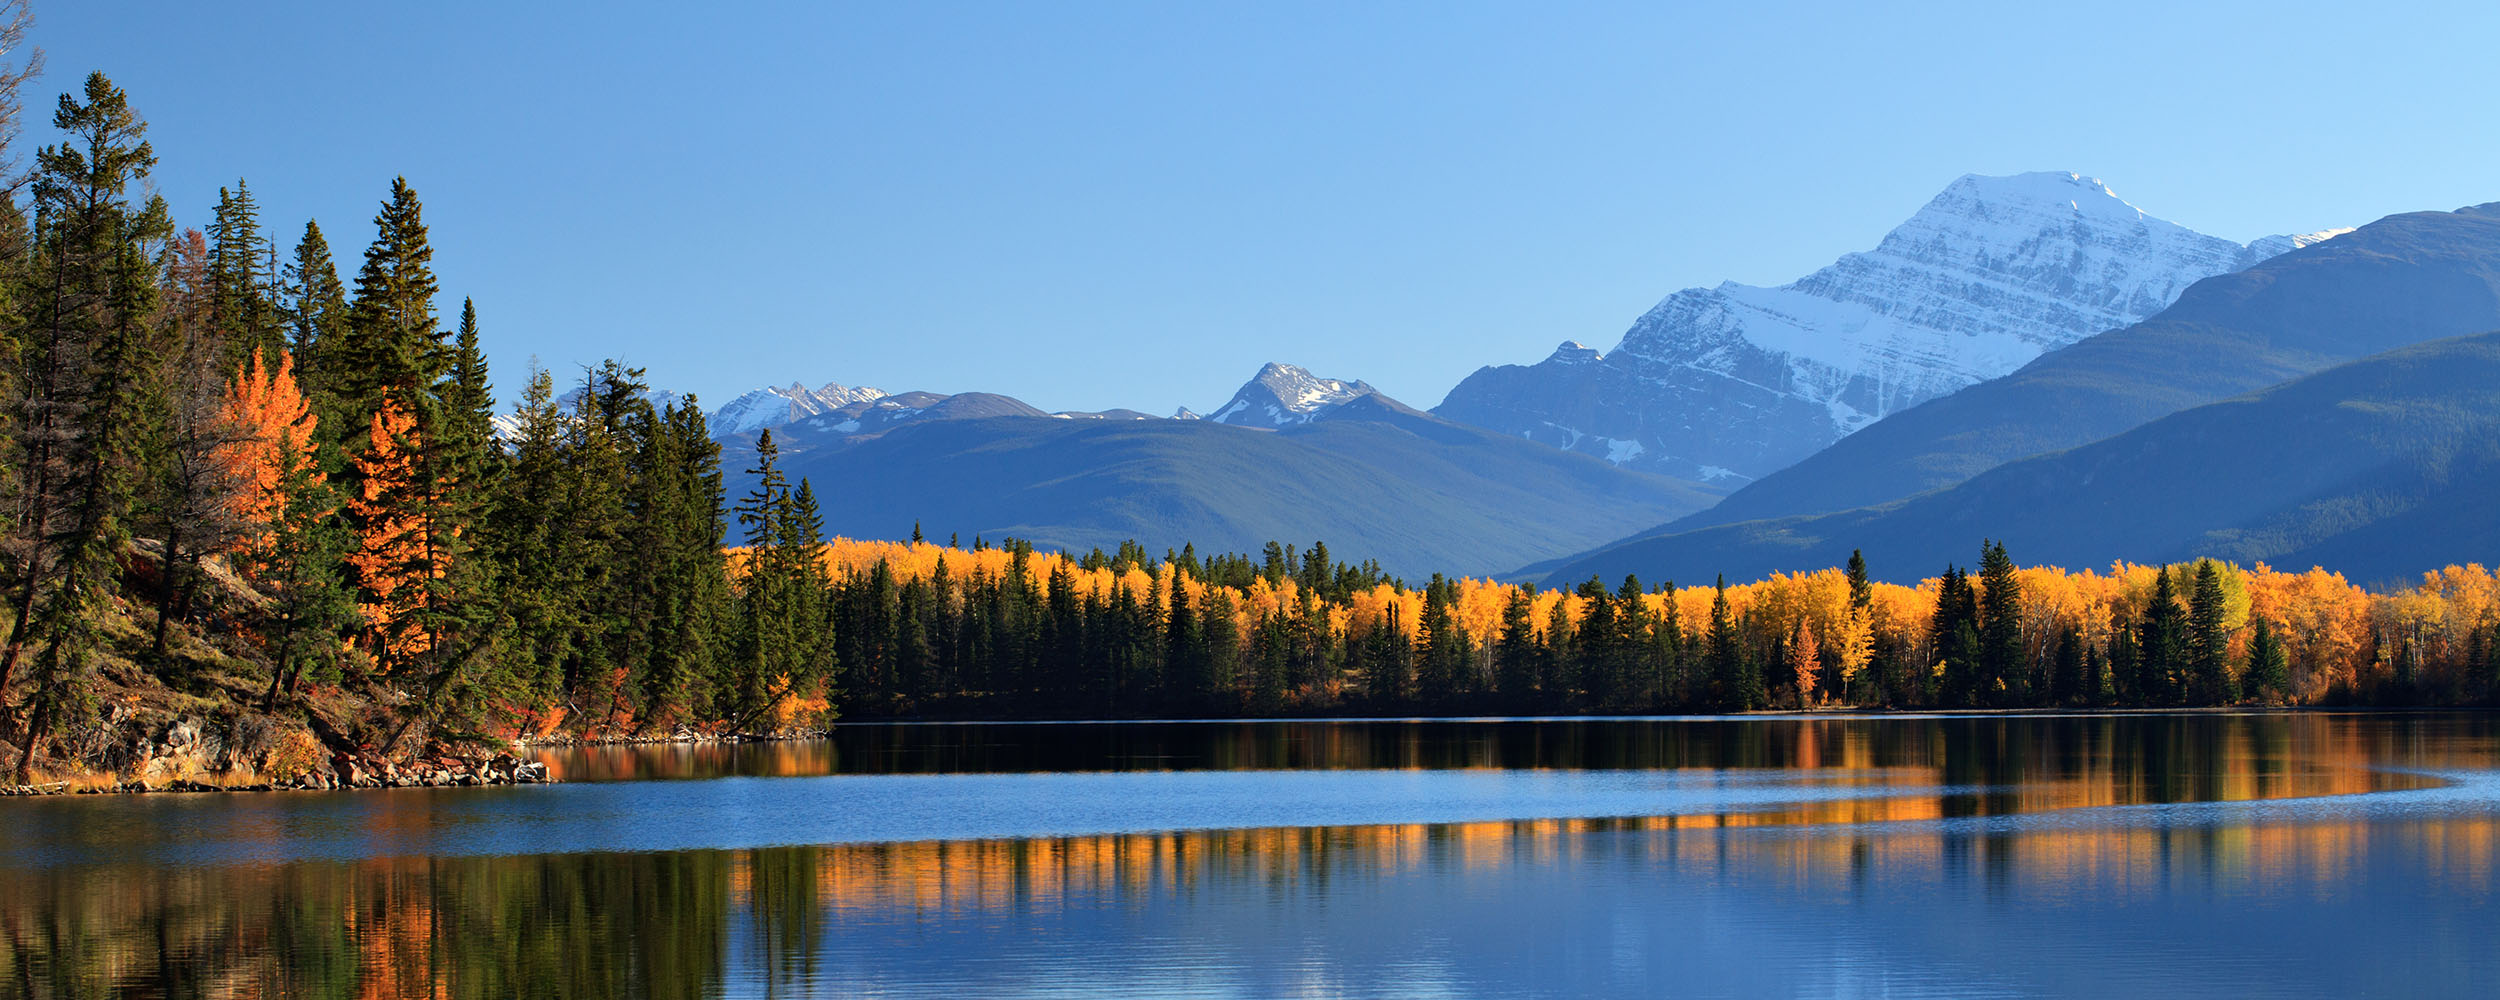 Fall colours around a lake in Jasper National Park